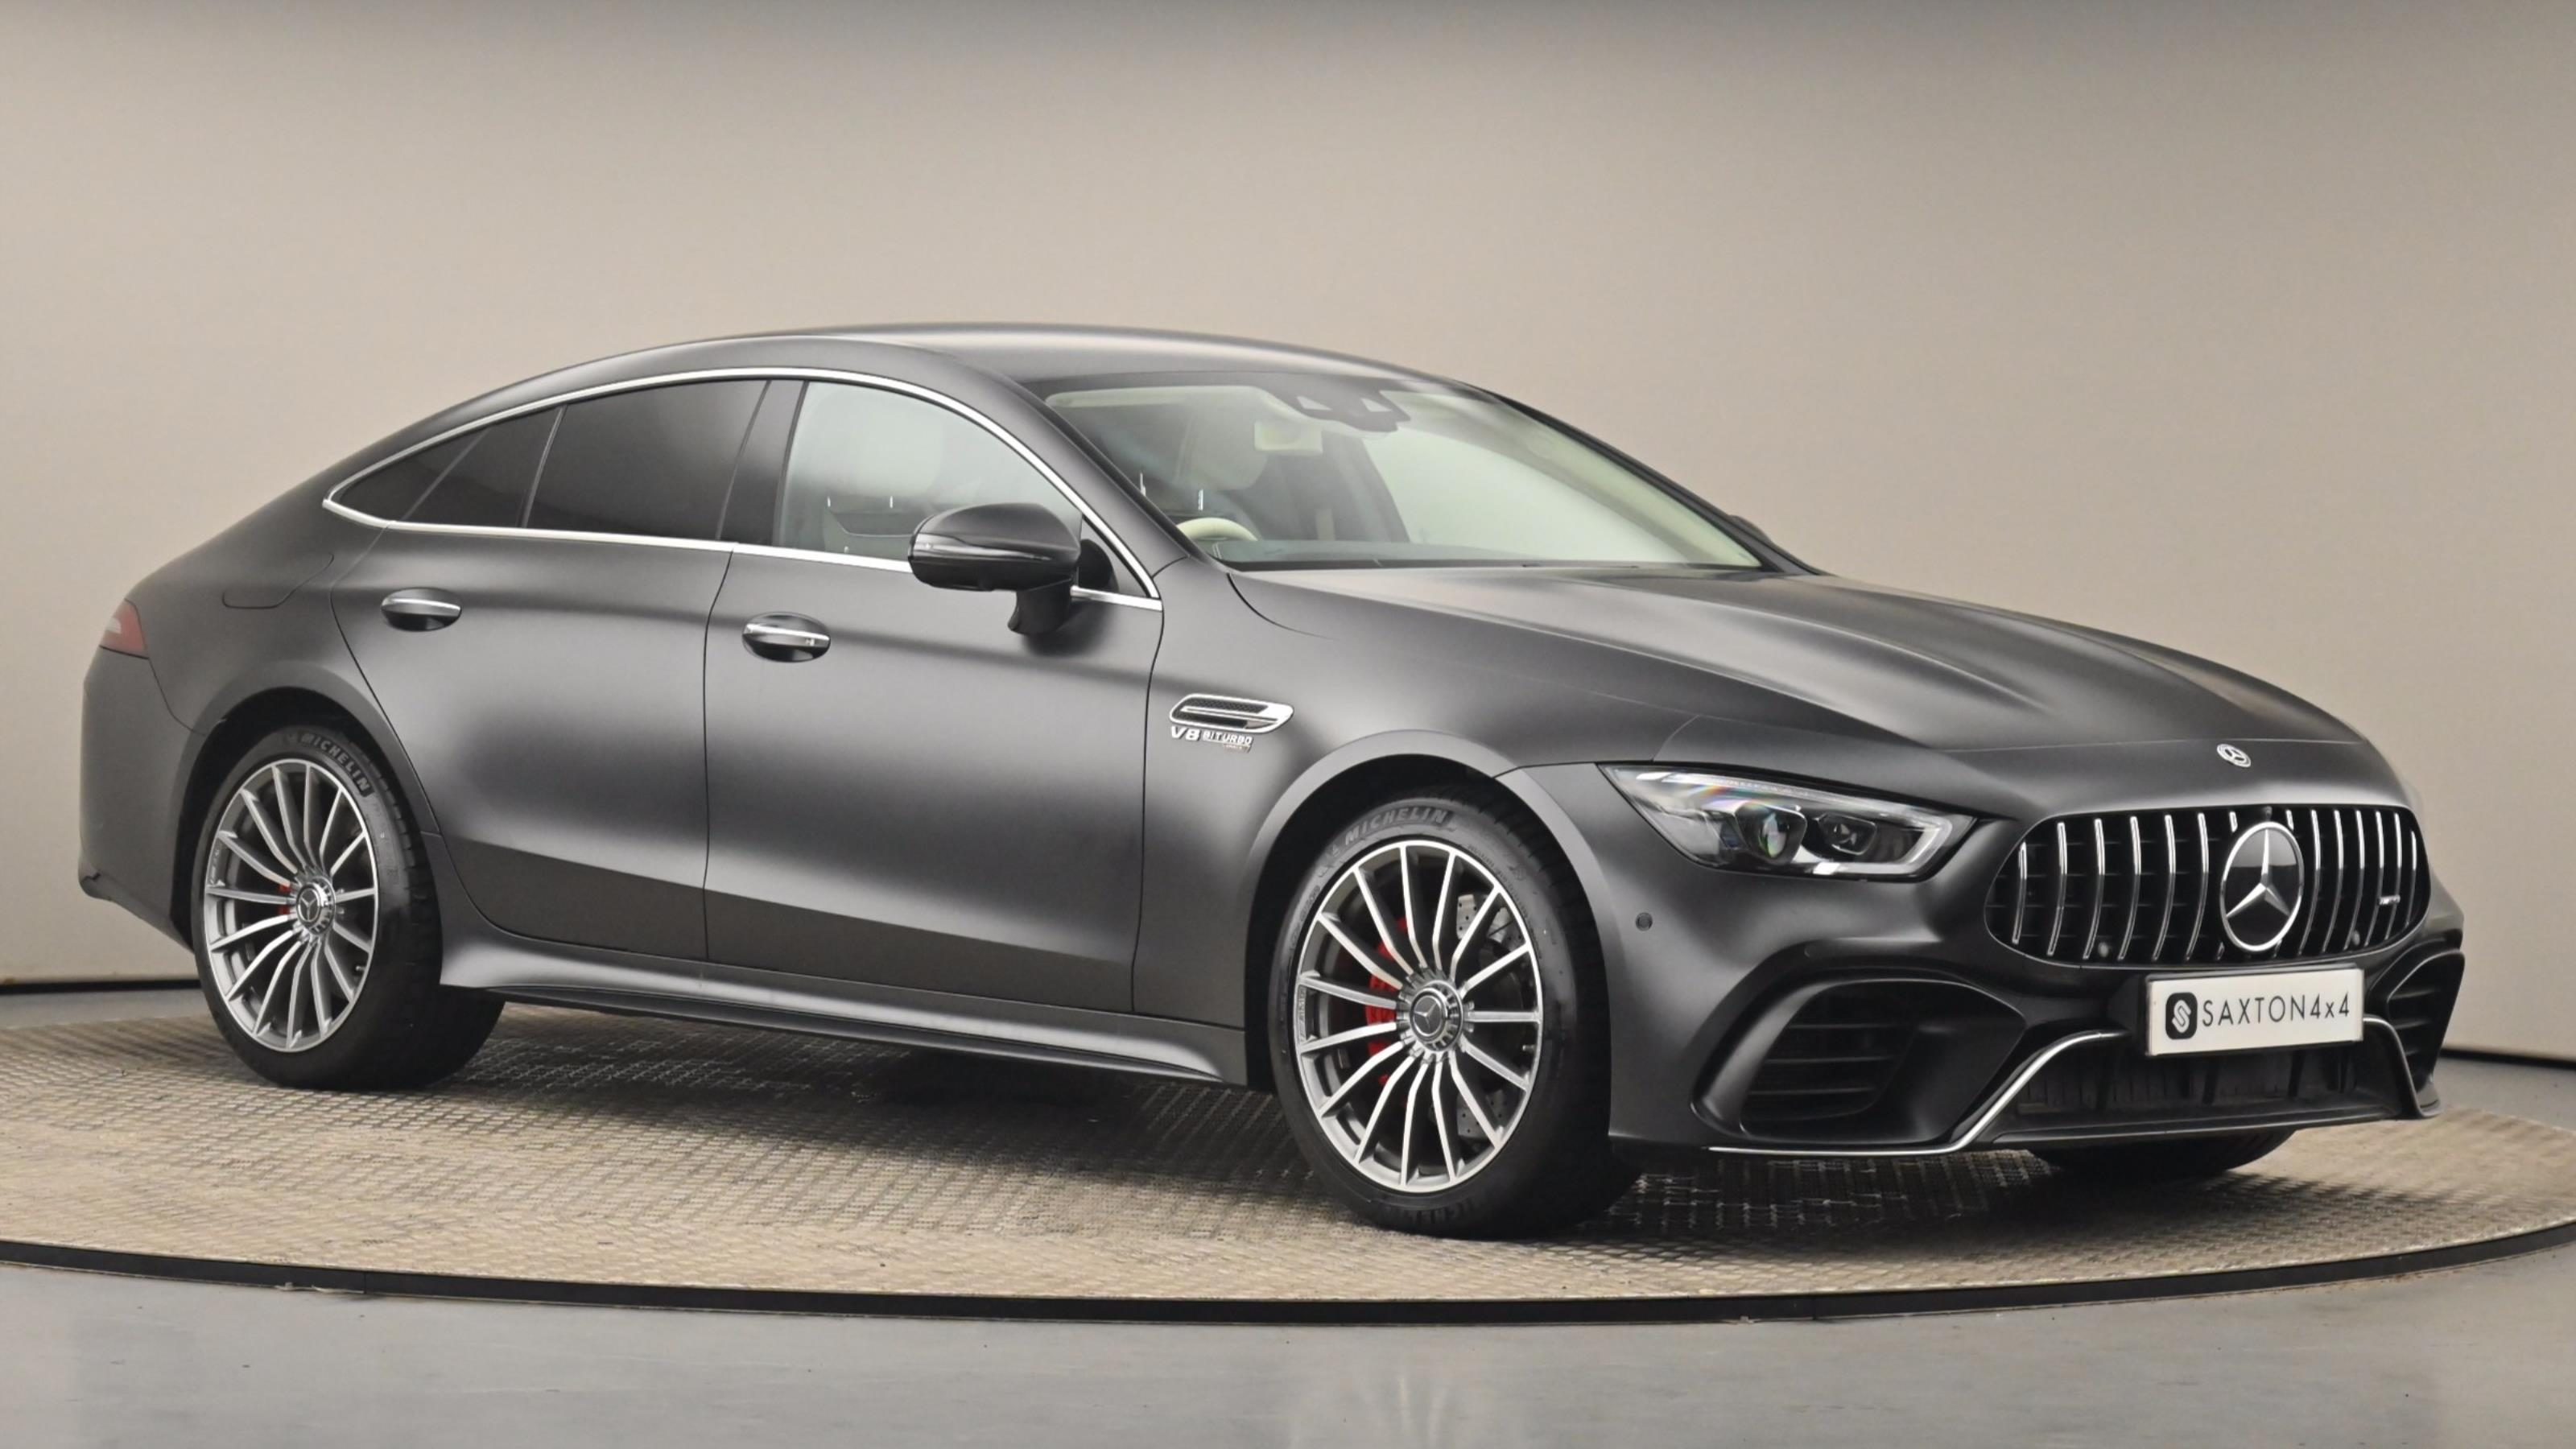 Used 2018 Mercedes-Benz Amg Gt 63 Premium + 4mati GREY at Saxton4x4